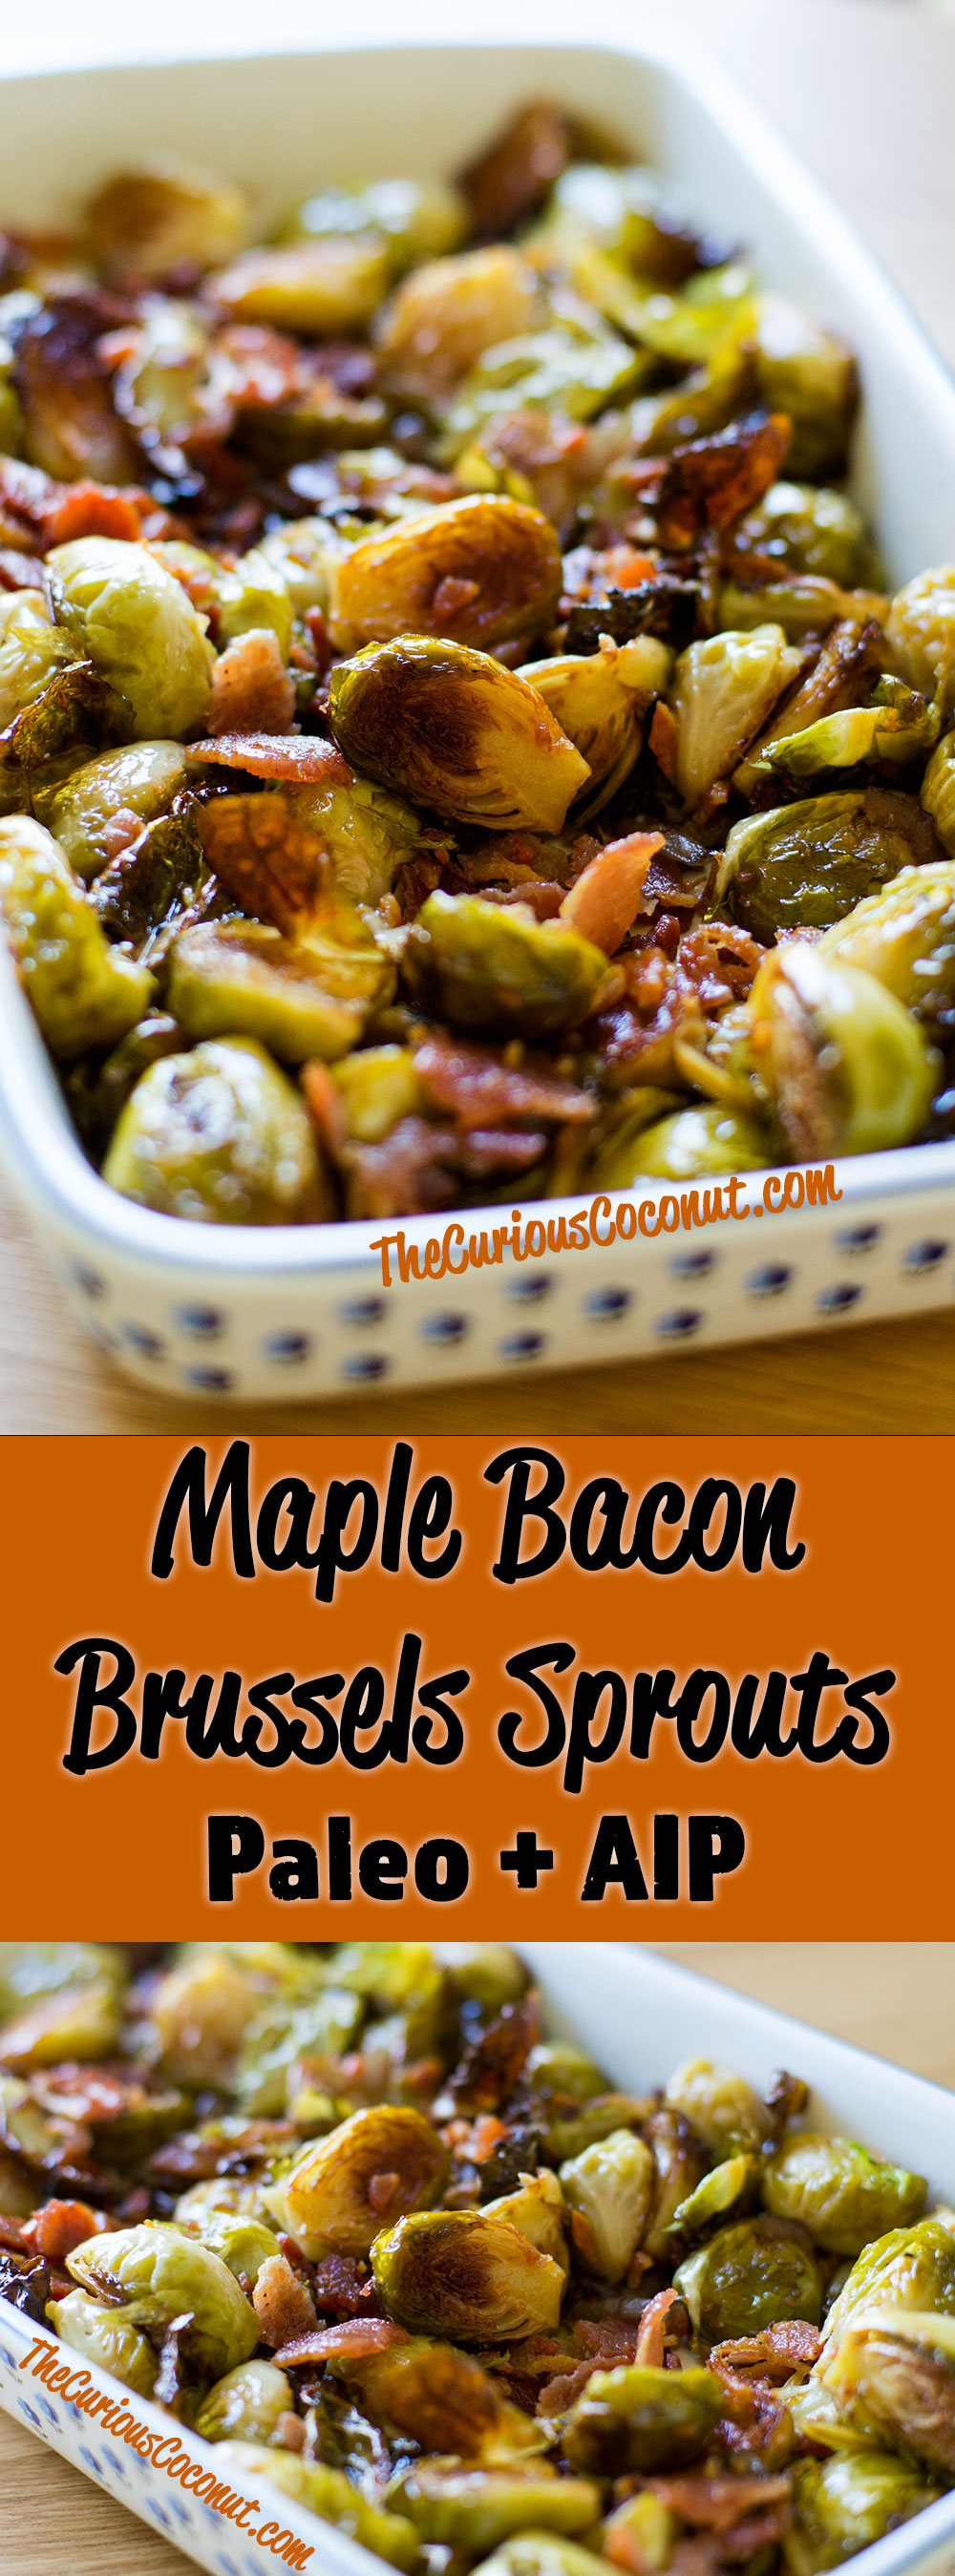 Maple Bacon Brussels Sprouts (Paleo, AIP)// TheCuriousCoconut.com